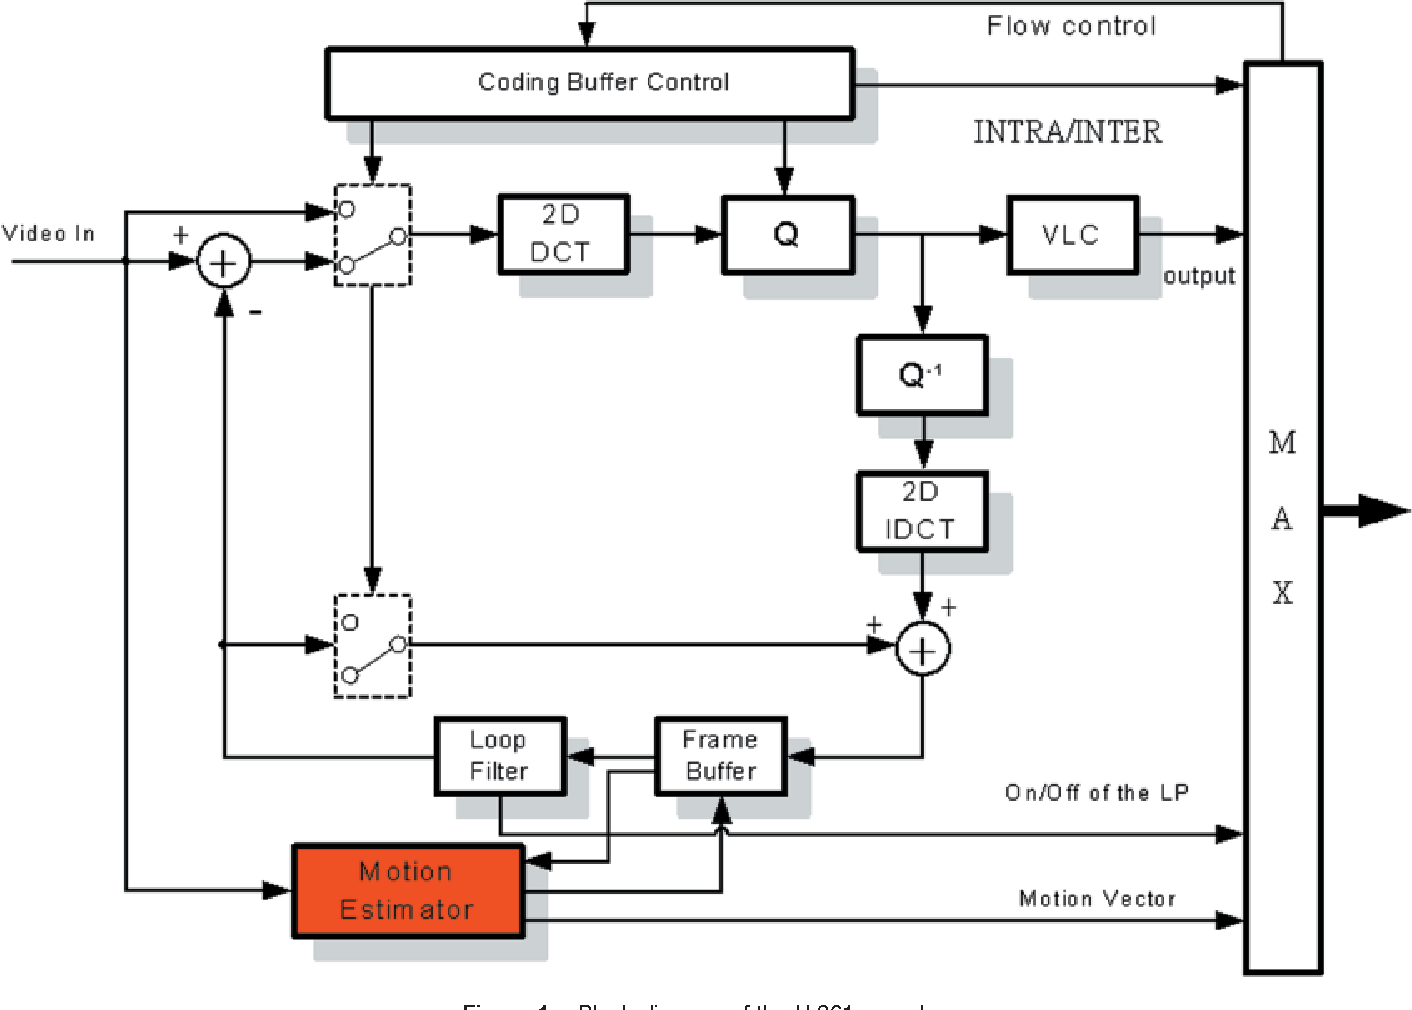 hight resolution of figure 1 from design and implementation of real time software based